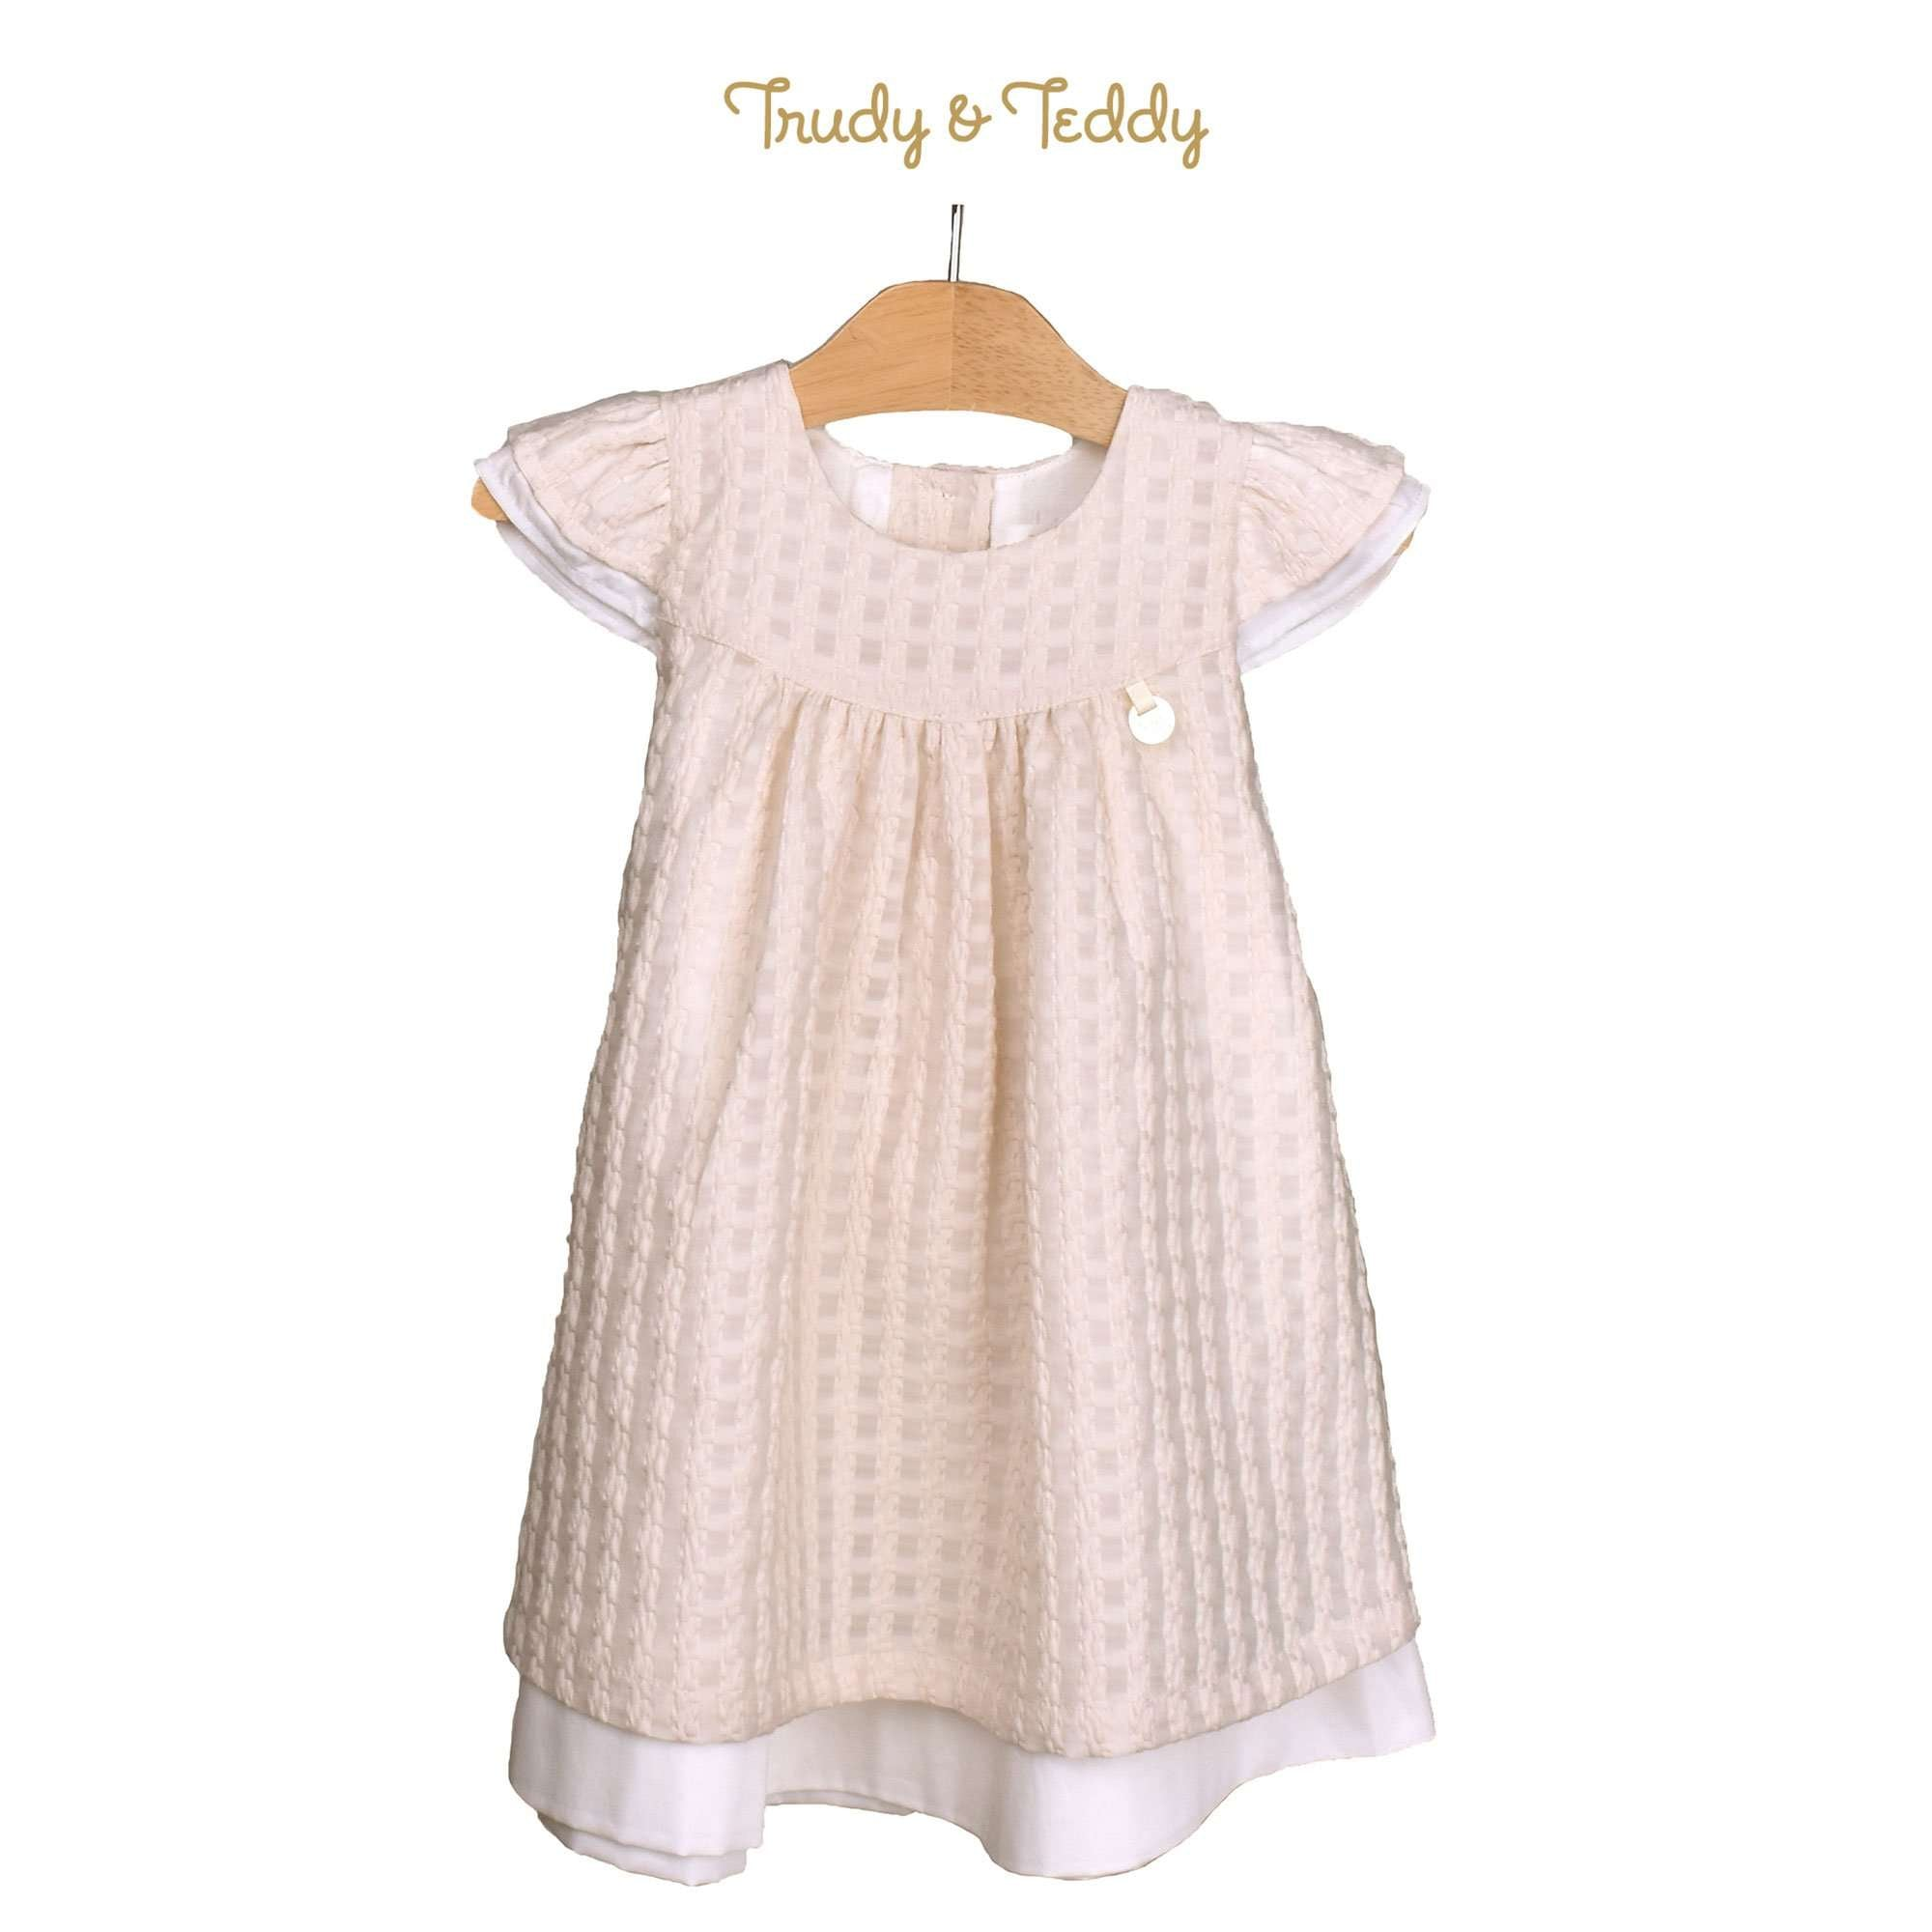 Trudy & Teddy Toddler Girl Woven Short Sleeve Dress 815138-311 : Buy Trudy & Teddy online at CMG.MY